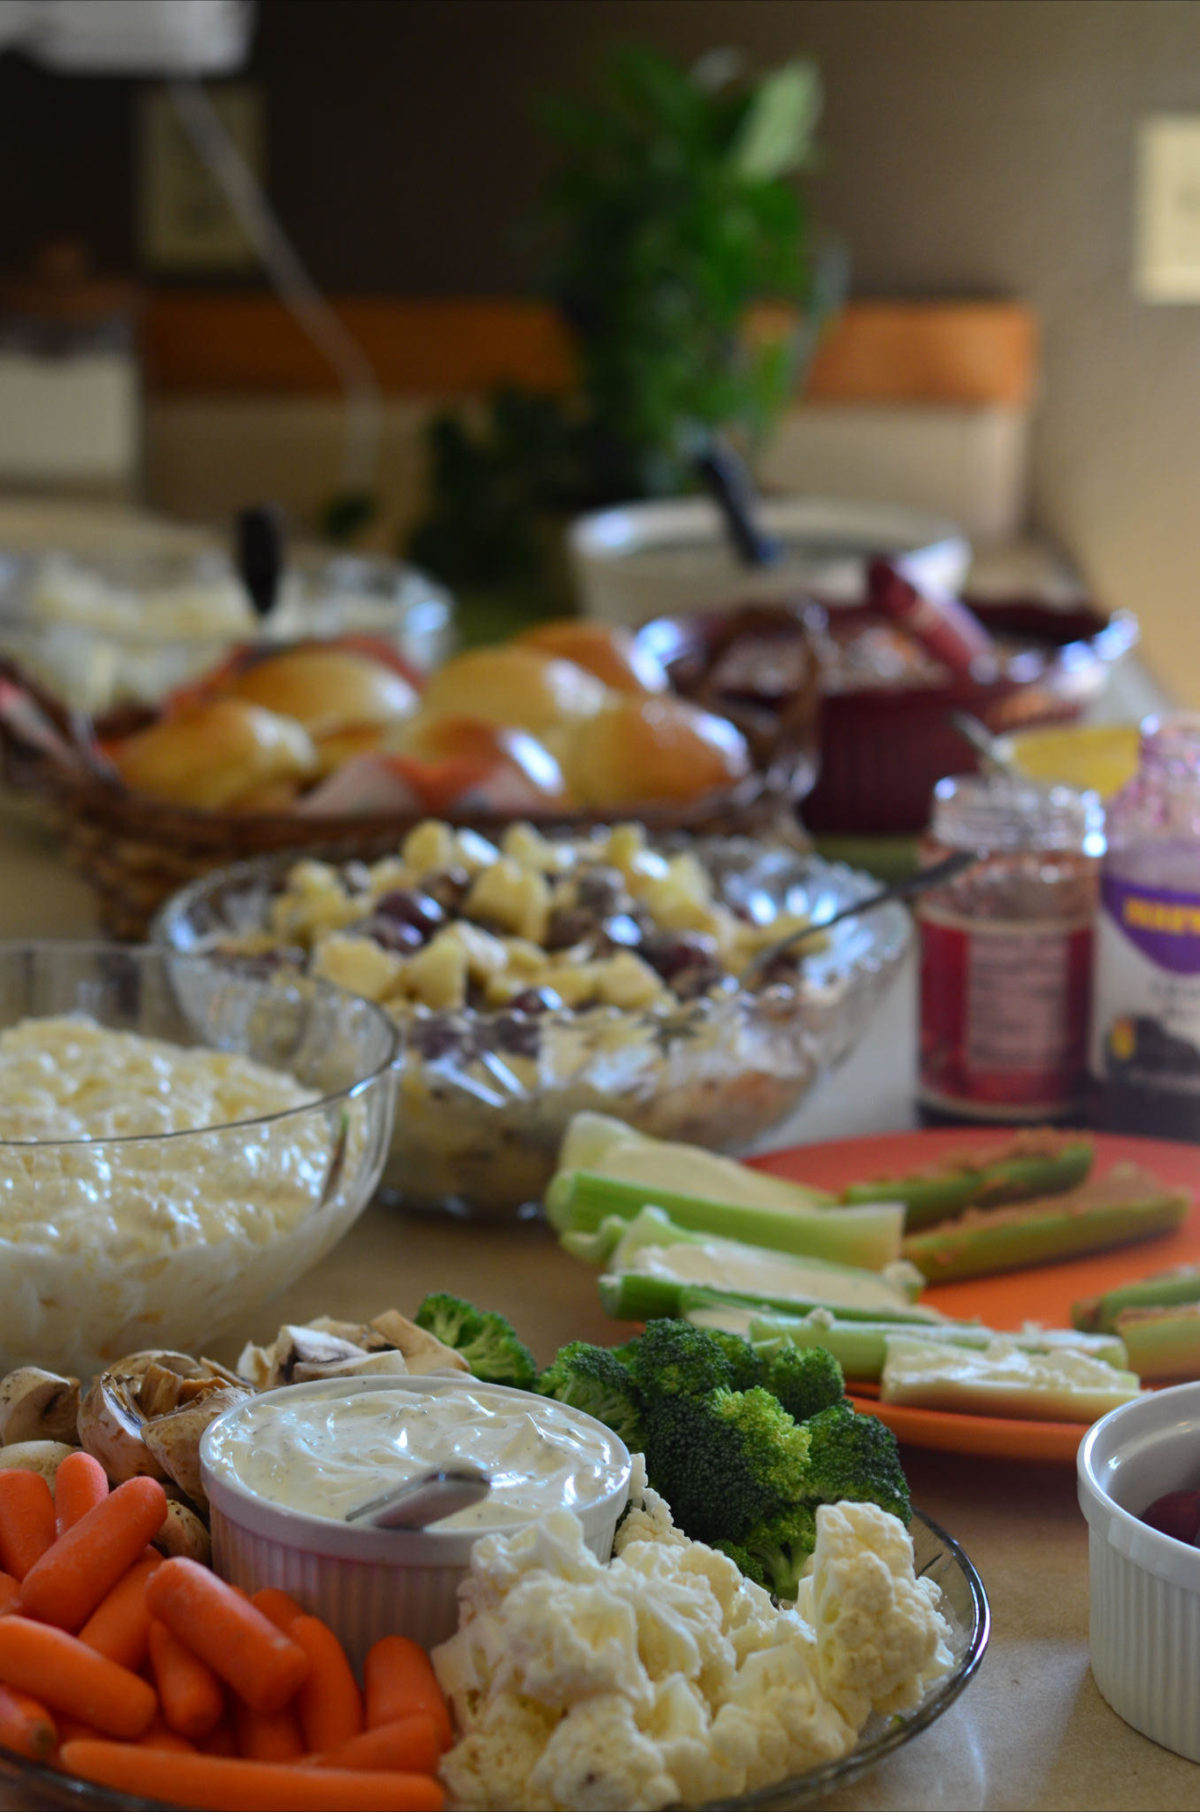 Fellowship Meal: Sunday, March 3